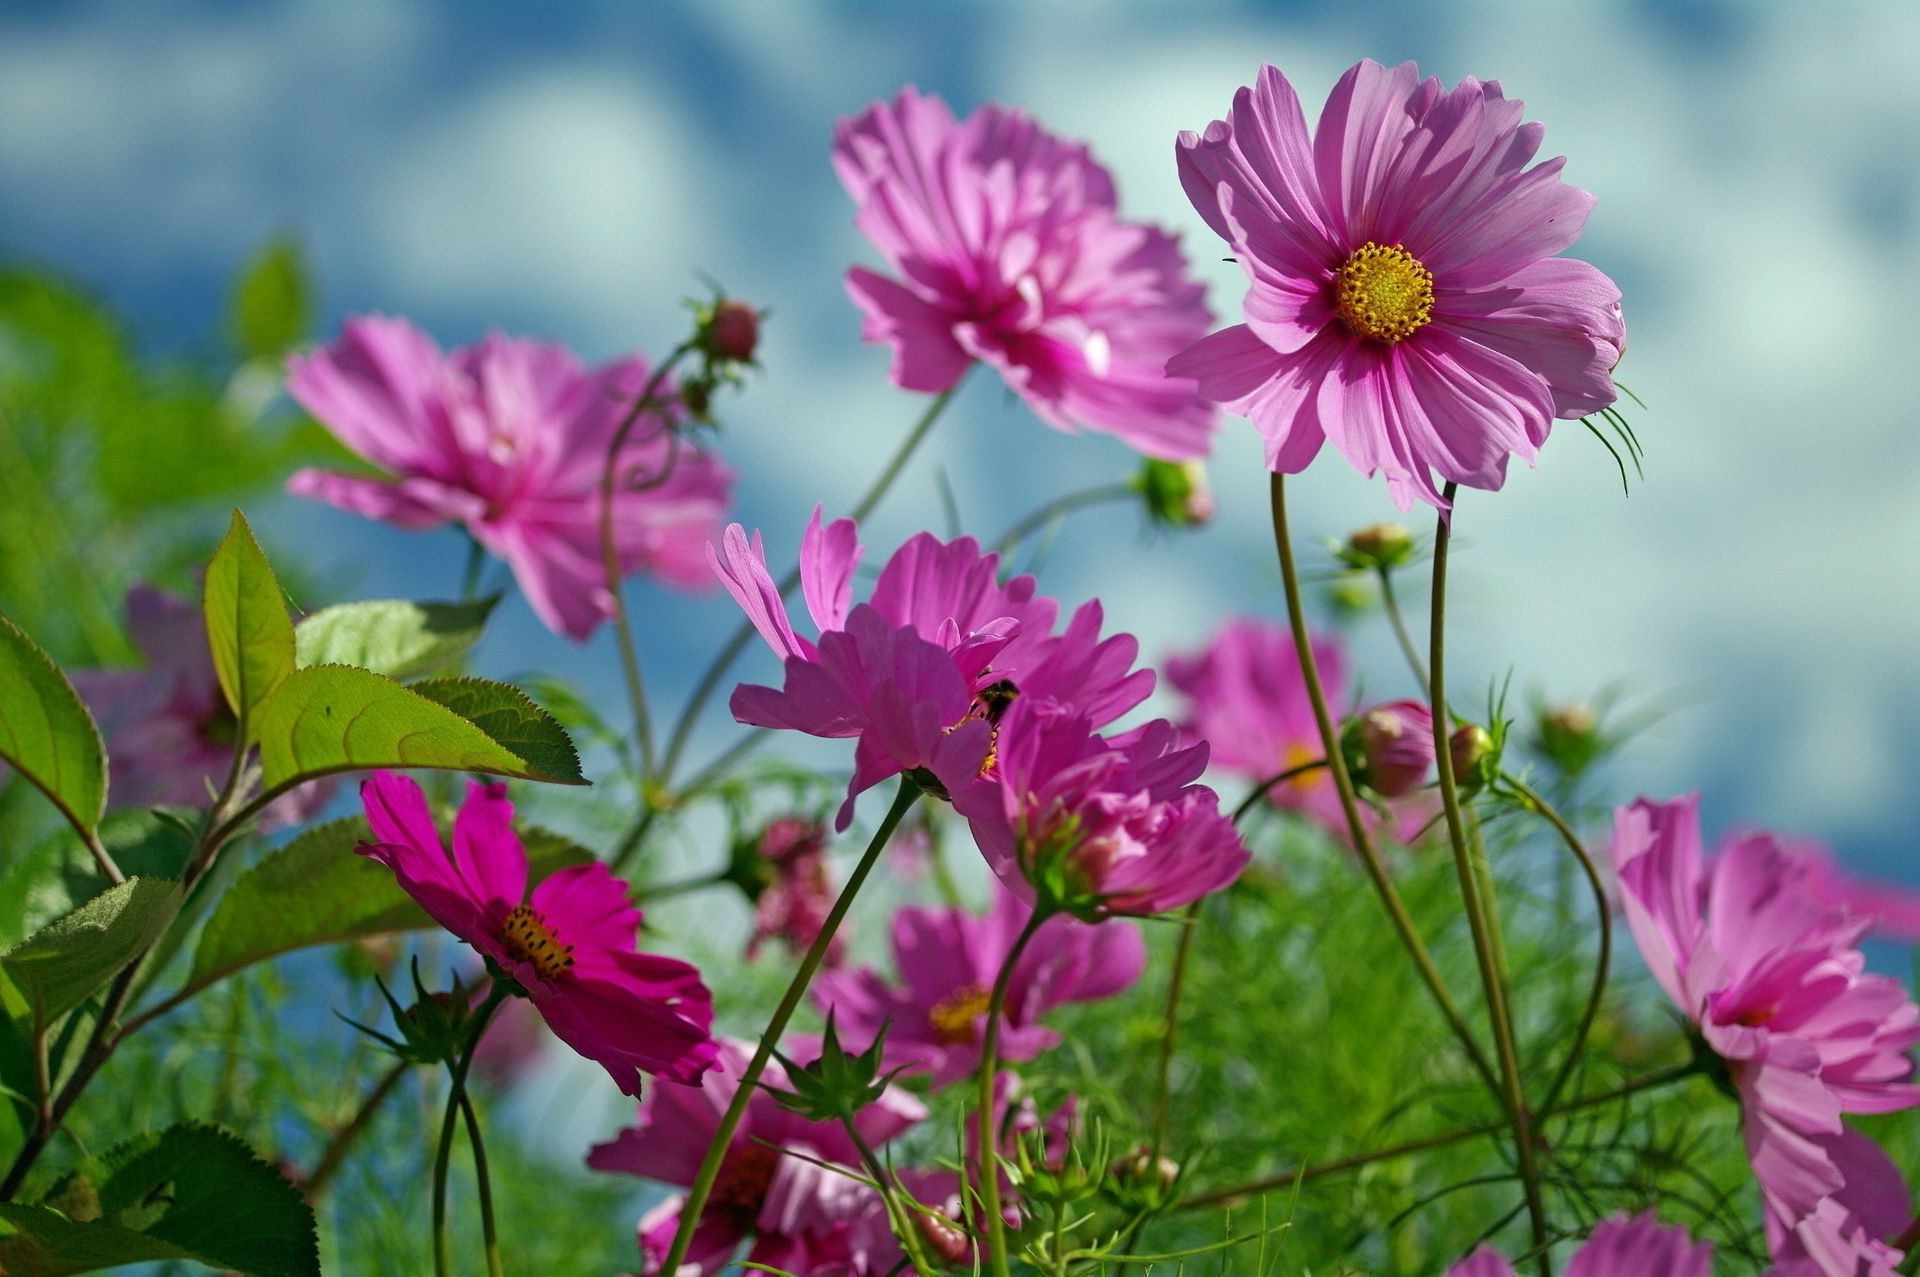 Summer beauty nature flowers android wallpapers for free izmirmasajfo